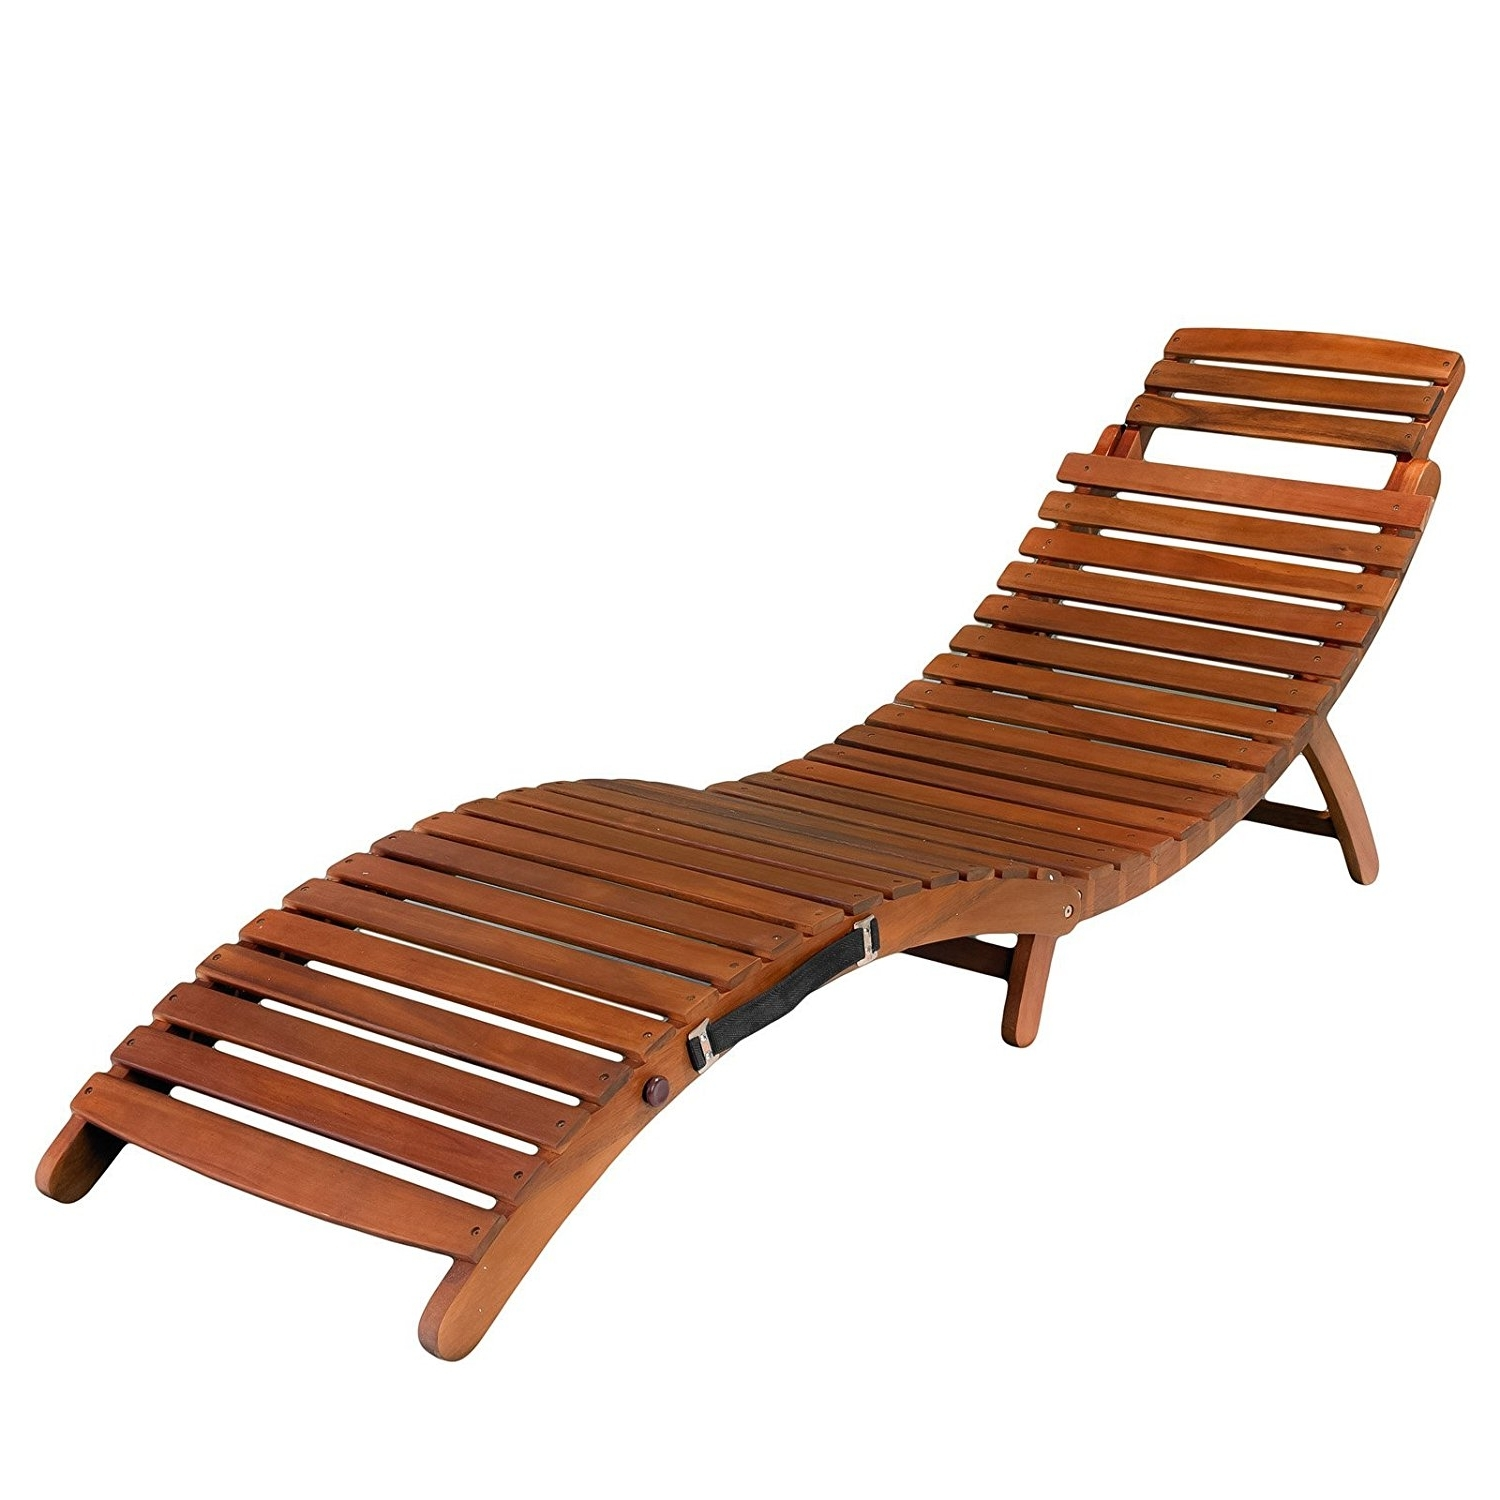 Folding Chaise Lounge Outdoor Chairs In Most Recent Amazon: Lahaina Outdoor Chaise Lounge: Garden & Outdoor (View 15 of 15)